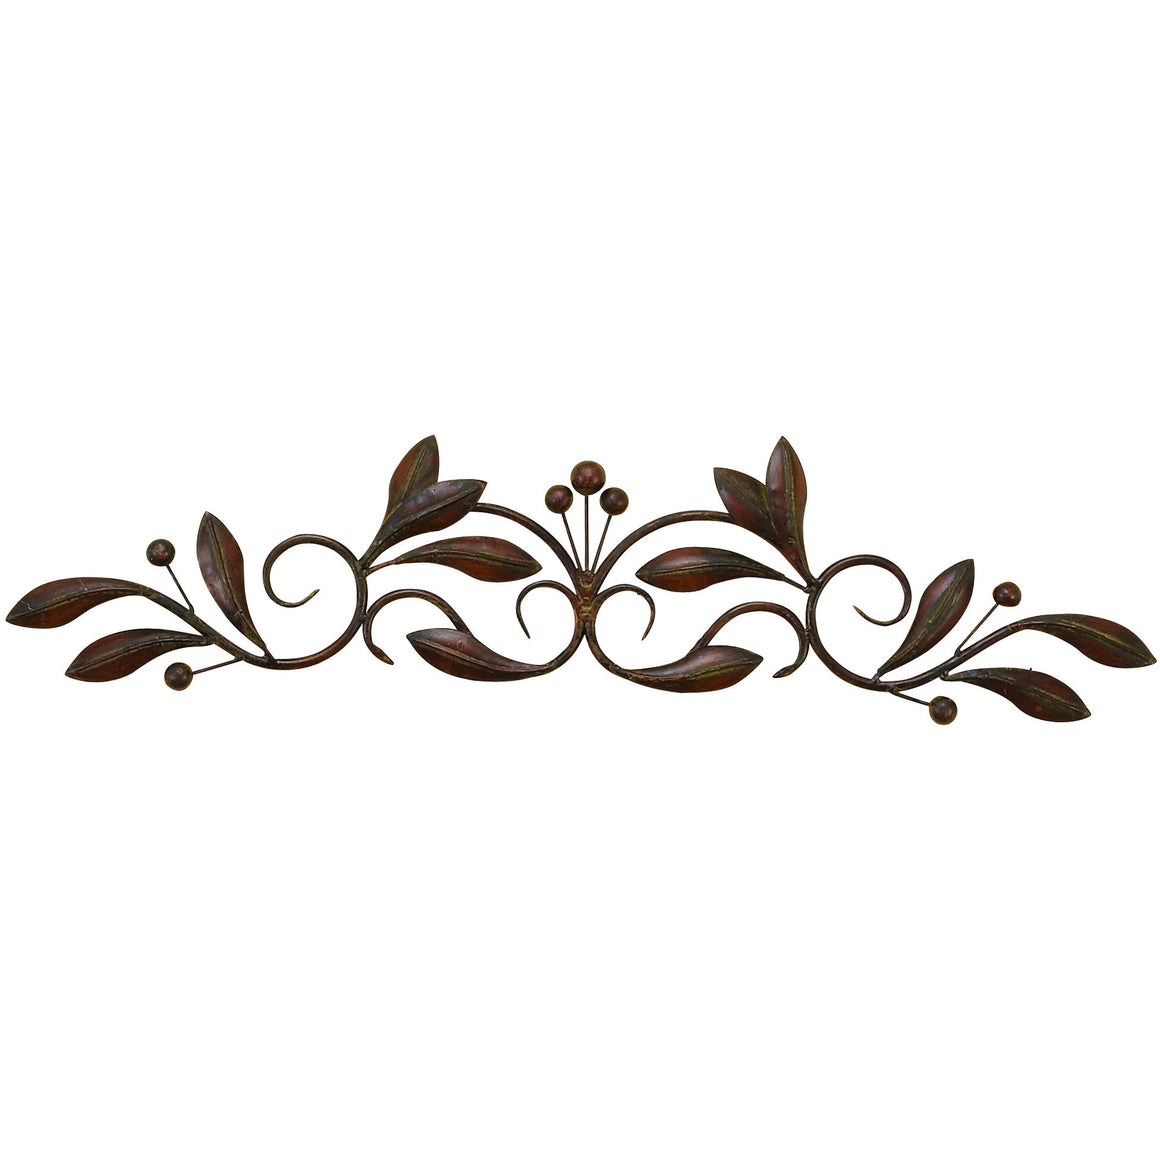 "Benzara 99545 Leaves Scroll Metal Wall Sculpture 30""W"